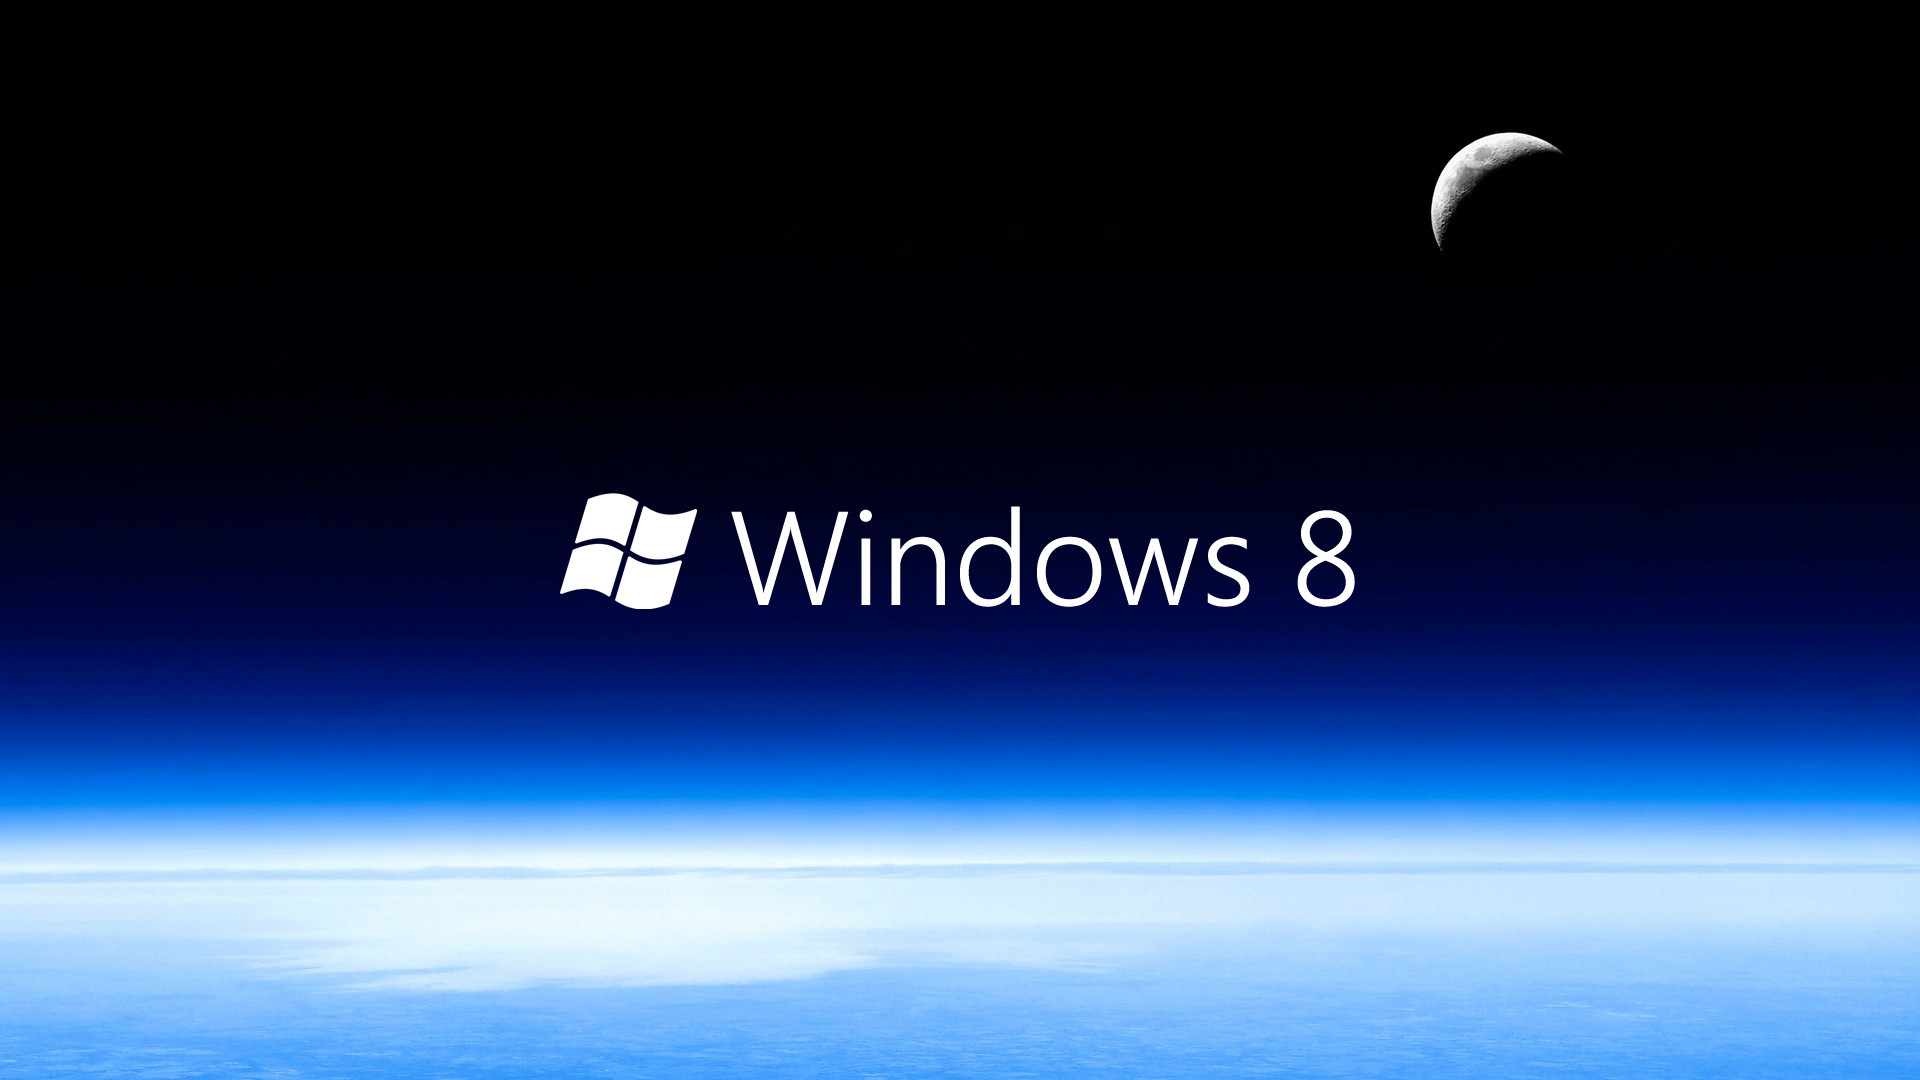 Windows 8 Wallpaper Free Download Wallpapers Hd Desktop: Microsoft Wallpapers Backgrounds Themes (51+ Images